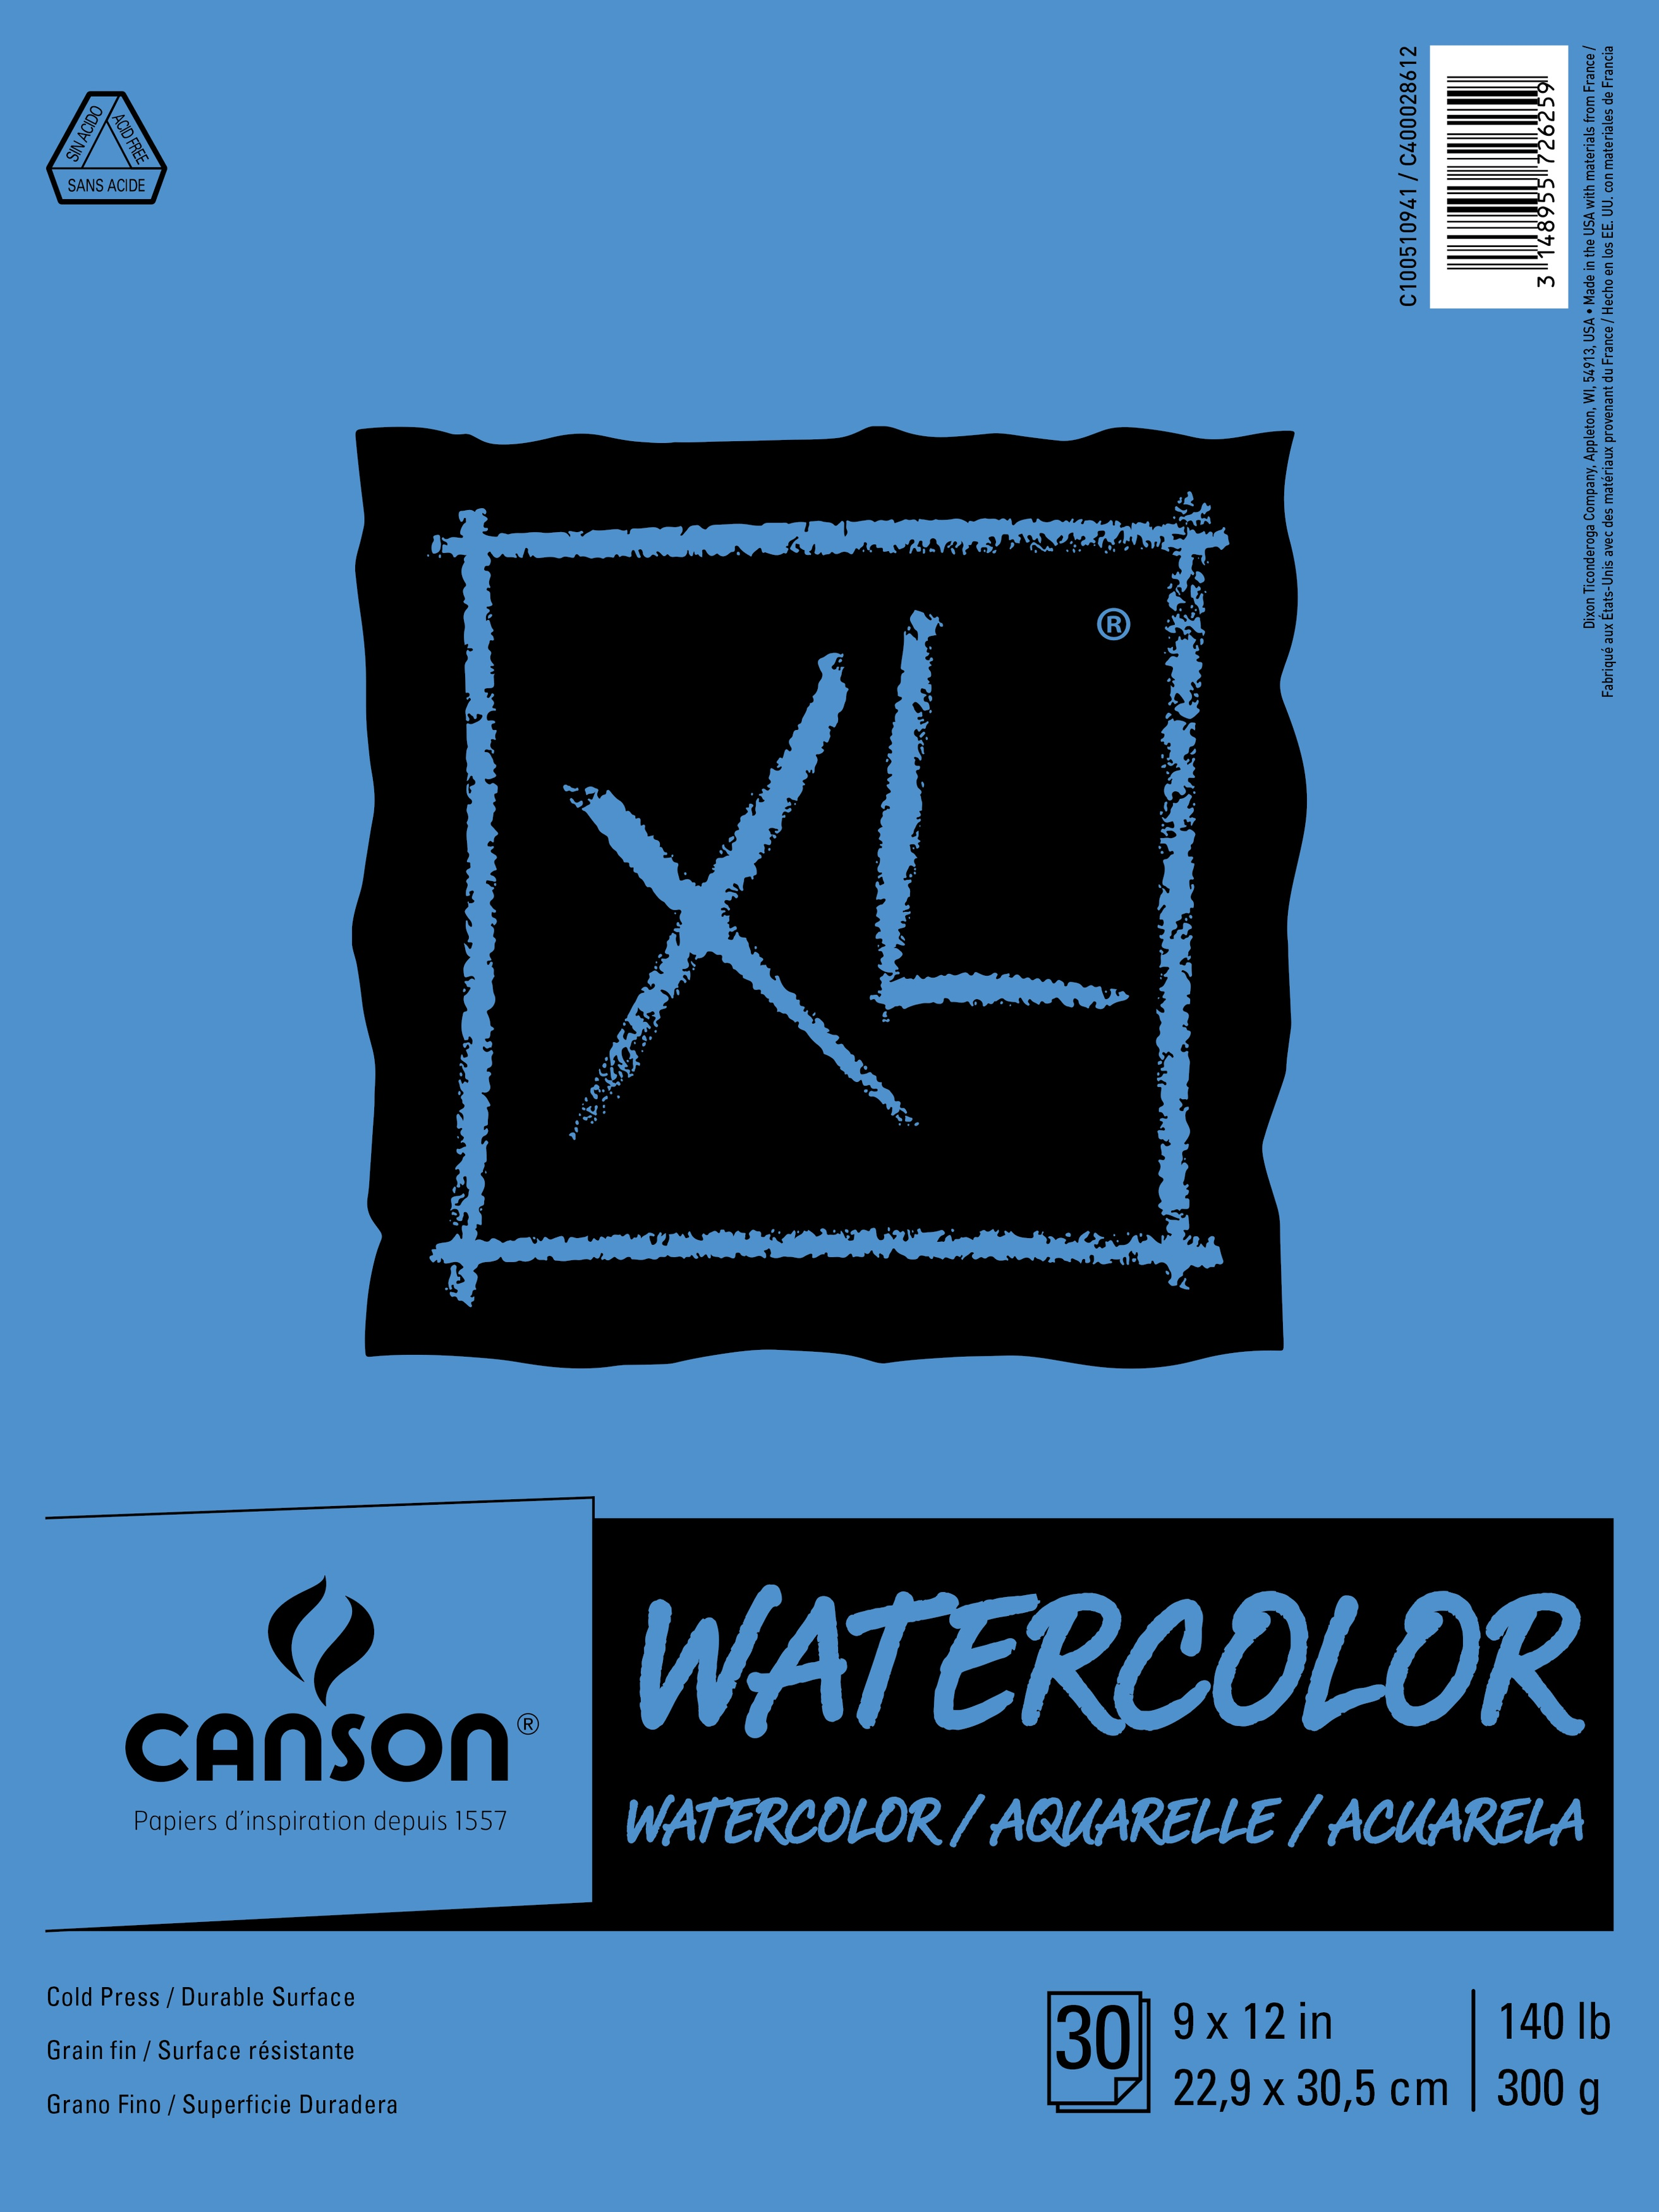 Canson XL Watercolor Paper Pad 9X12-30 Sheets